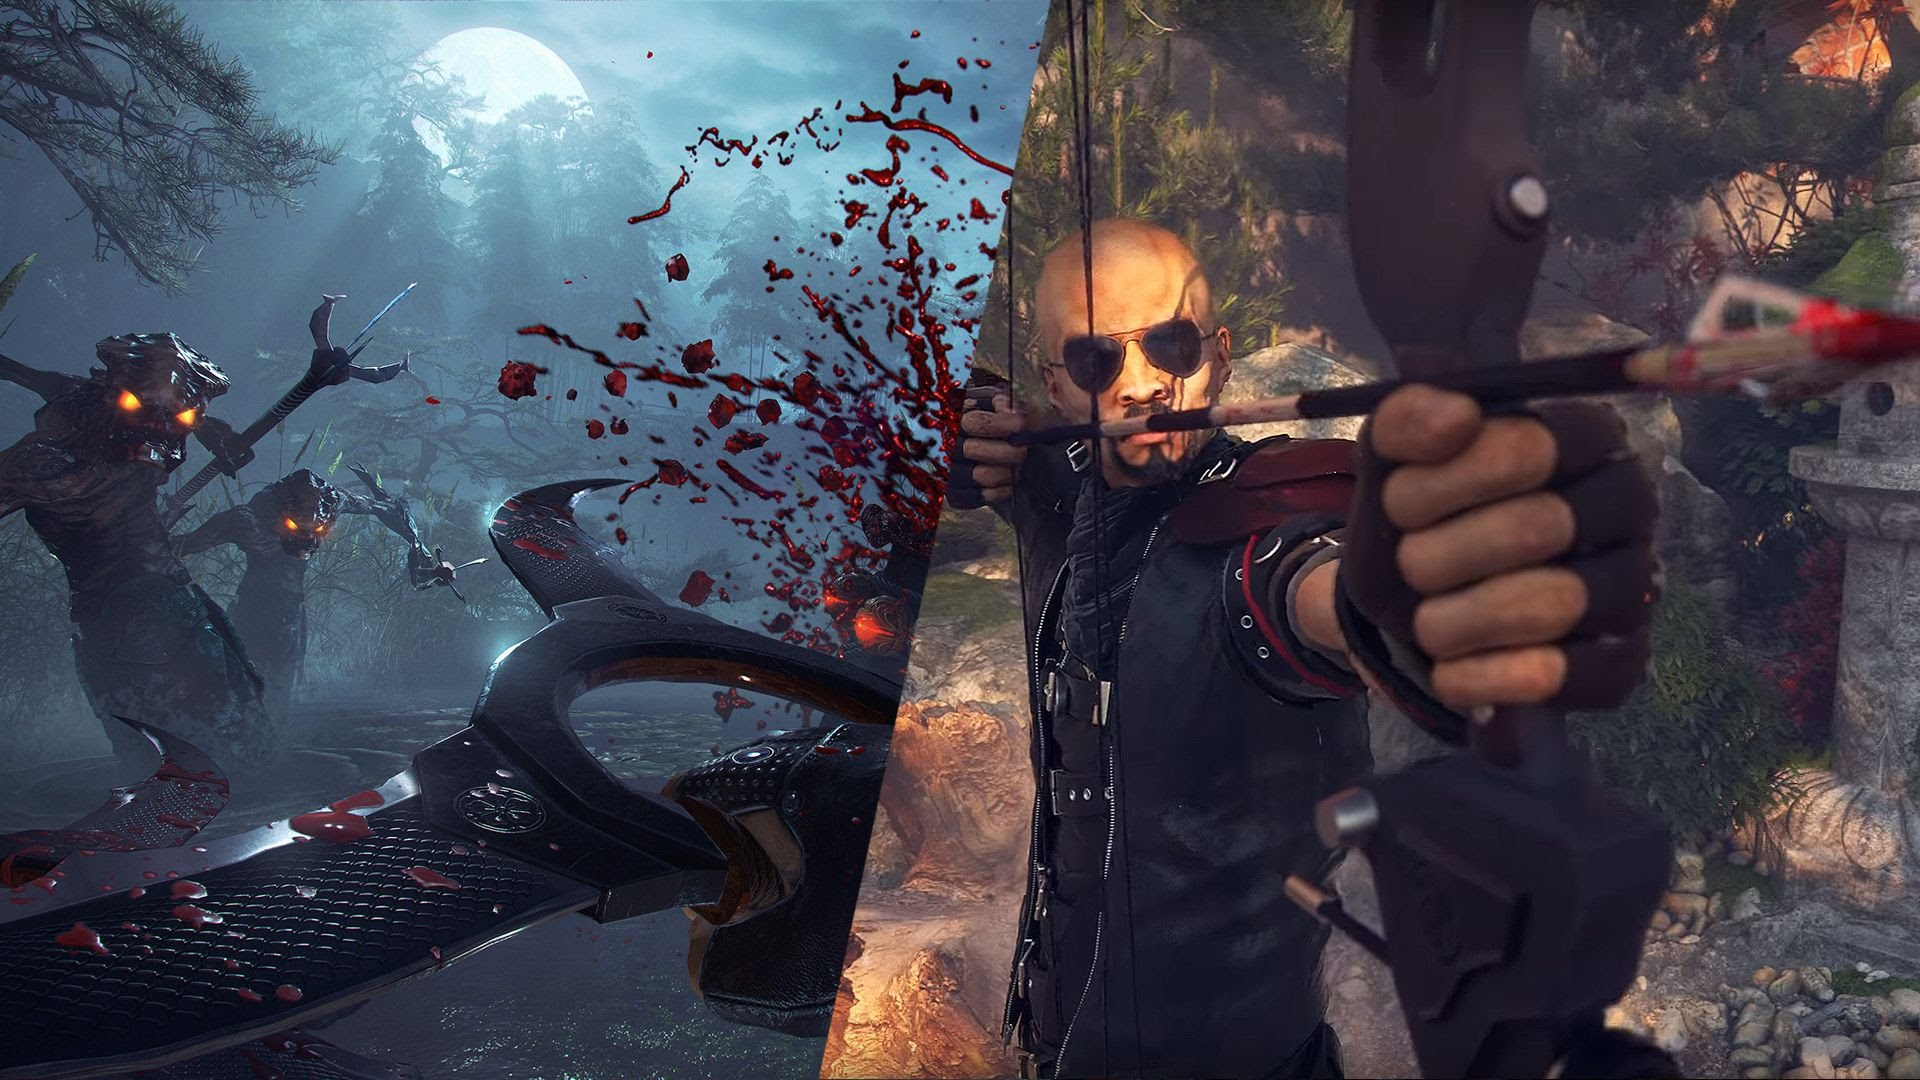 Steam Shadow Warrior 2